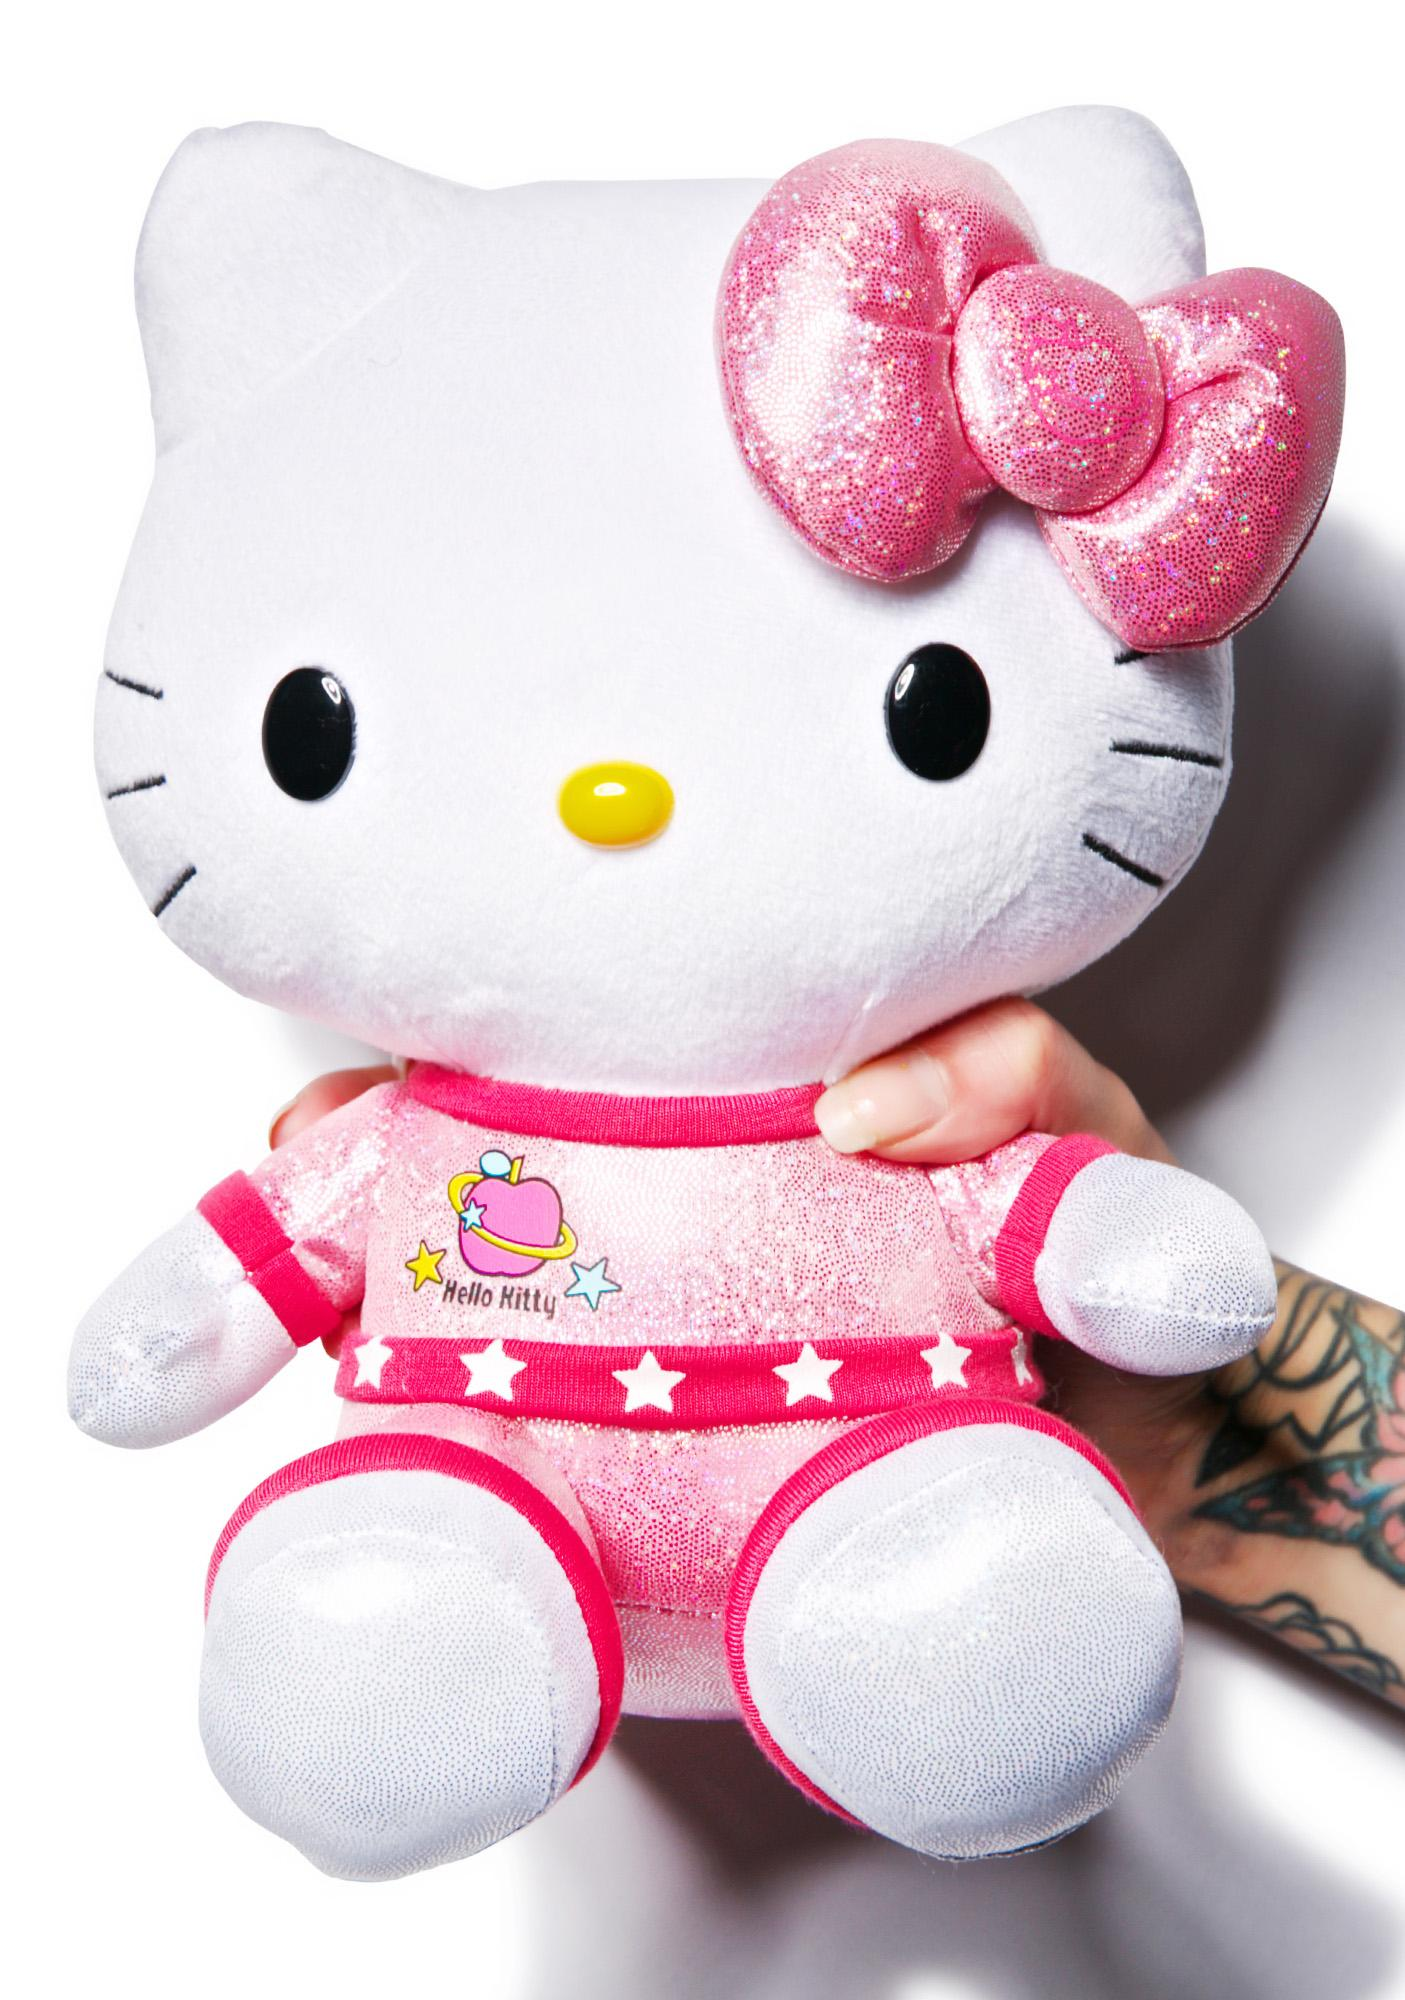 Sanrio Astronaut Hello Kitty Plush